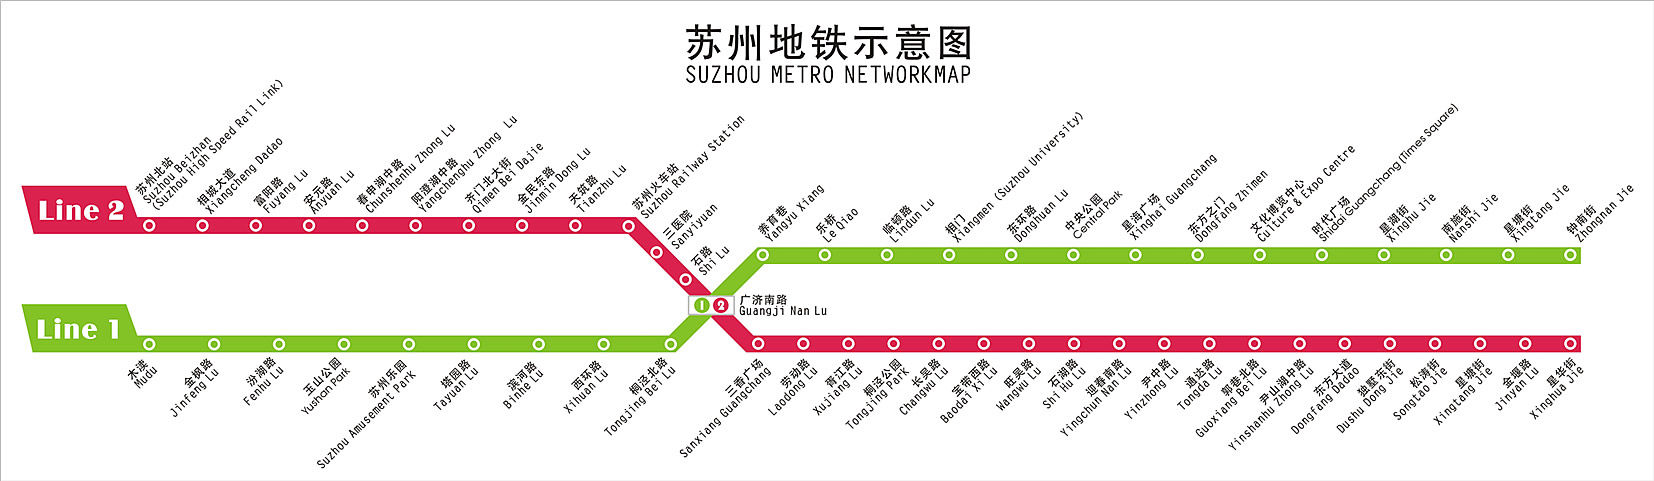 Subway Kart over Suzhou